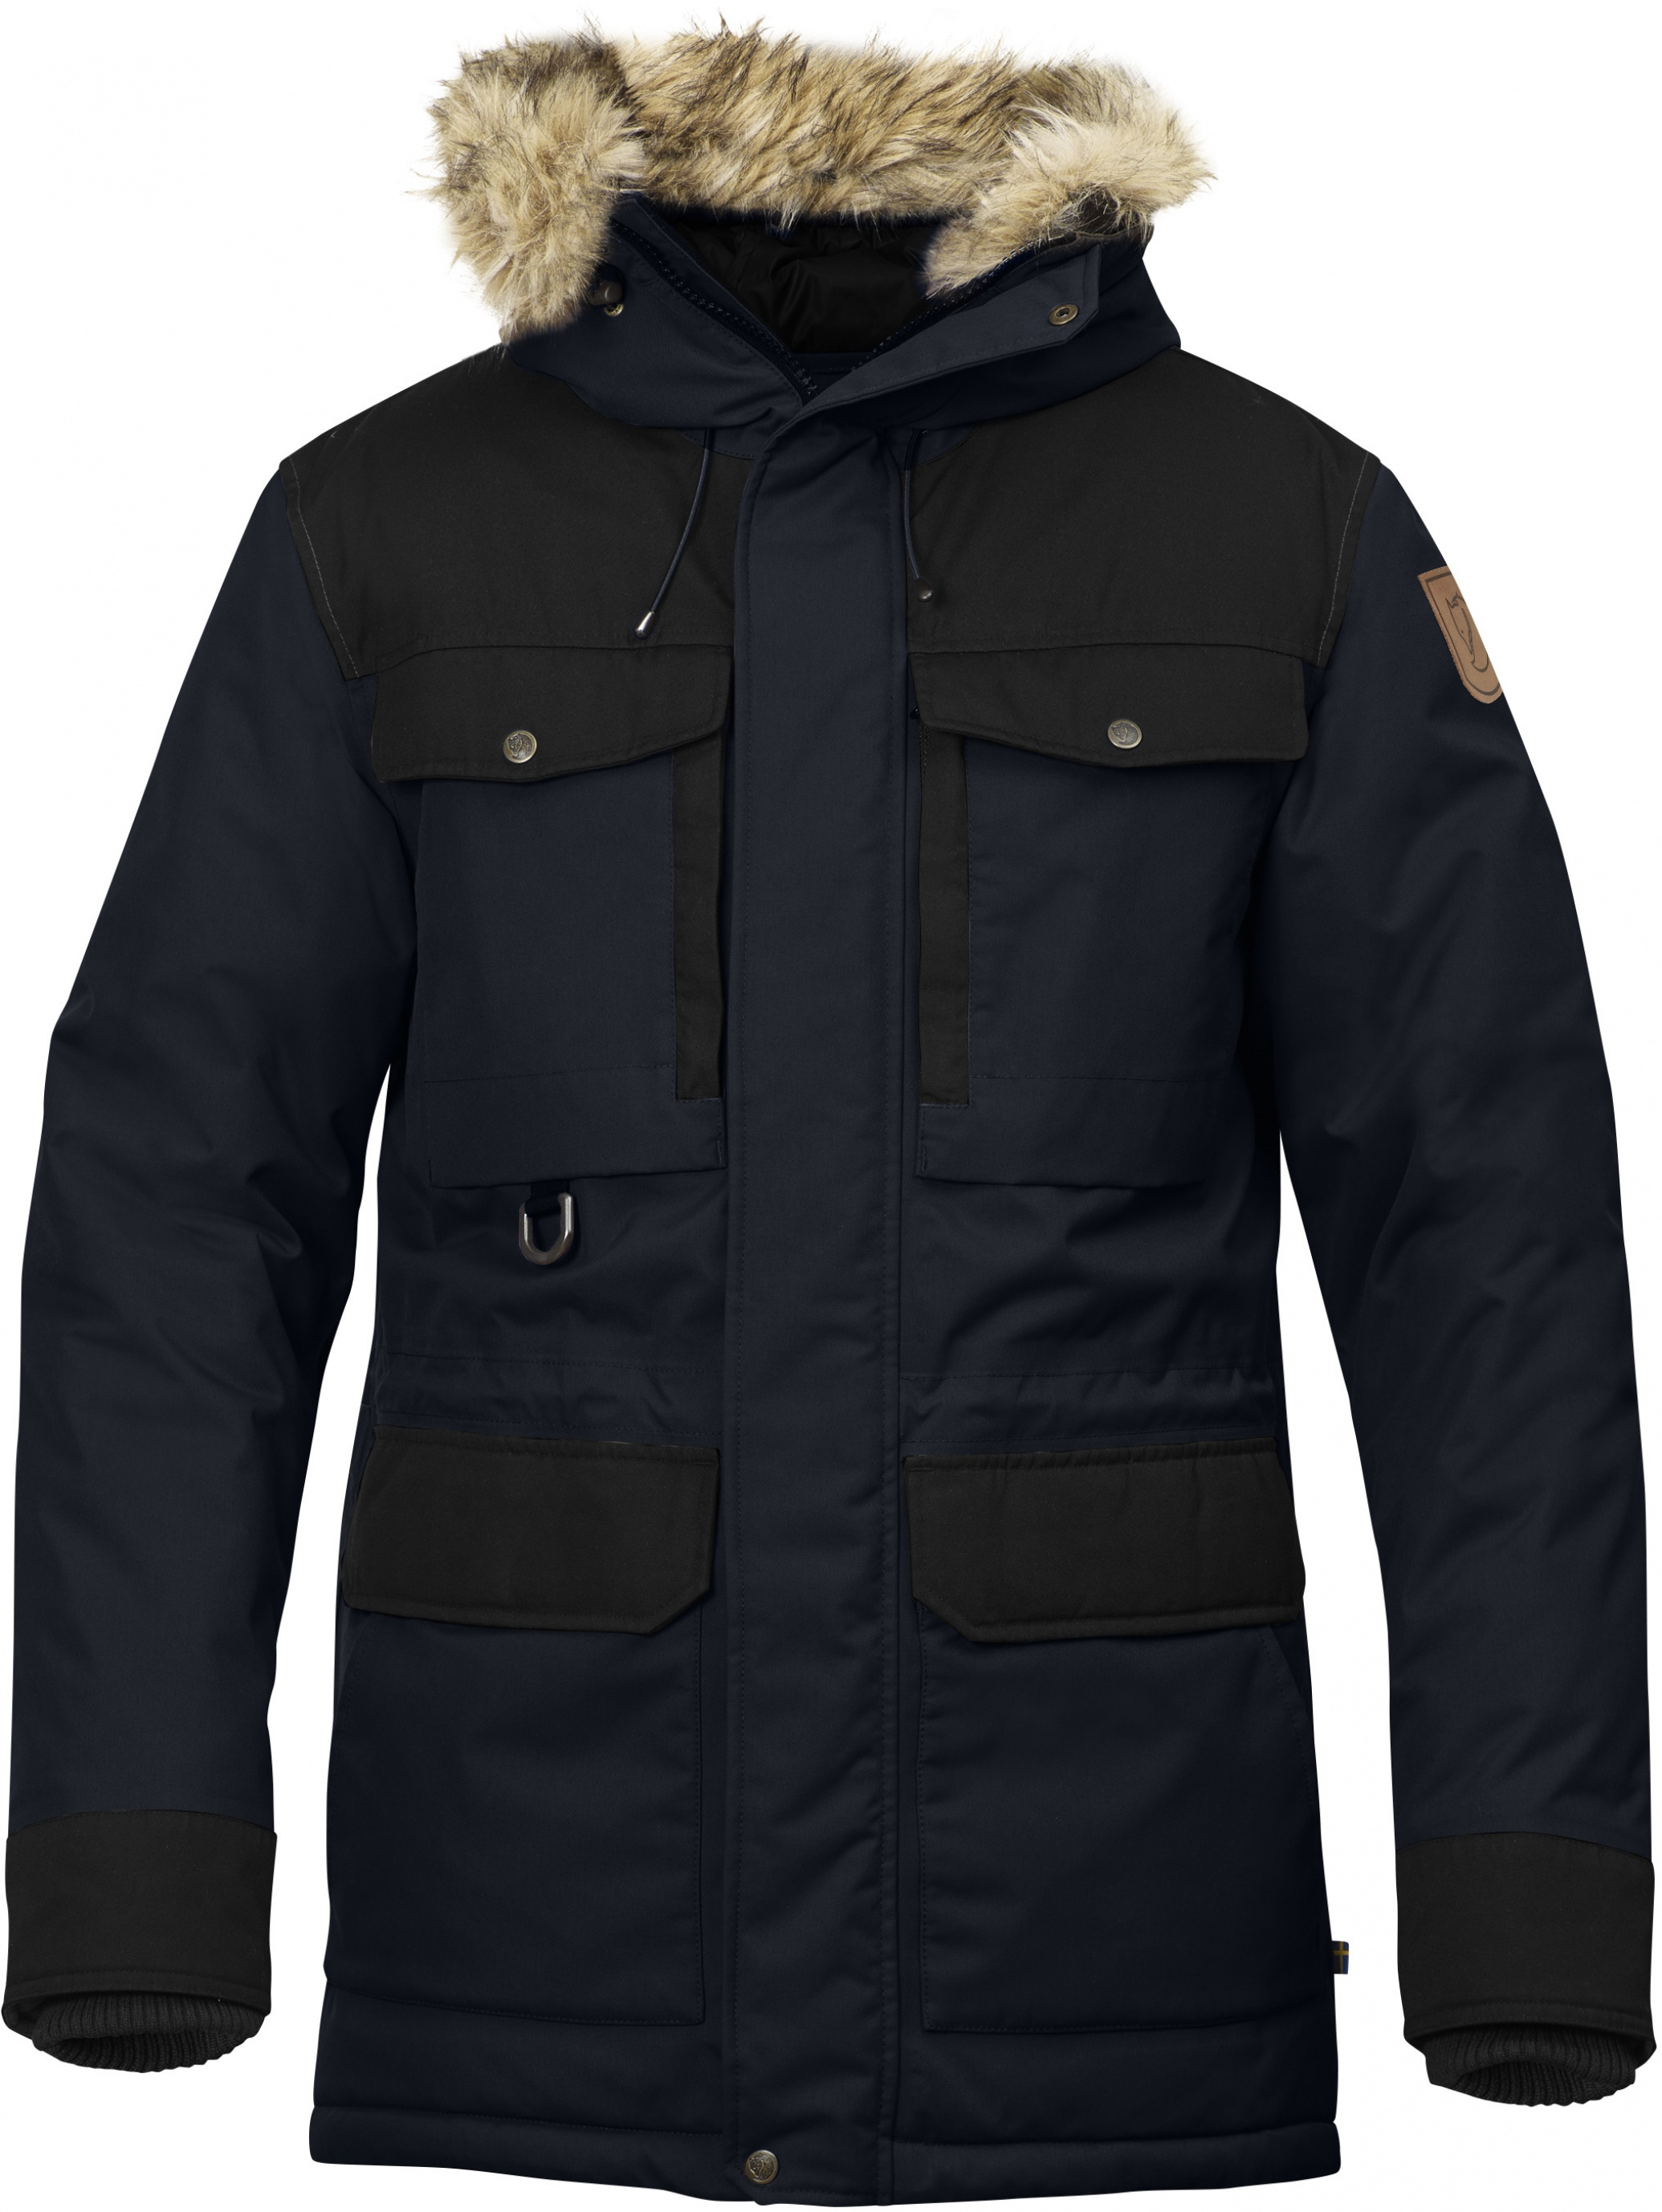 FjallRaven Polar Guide Parka Black-30